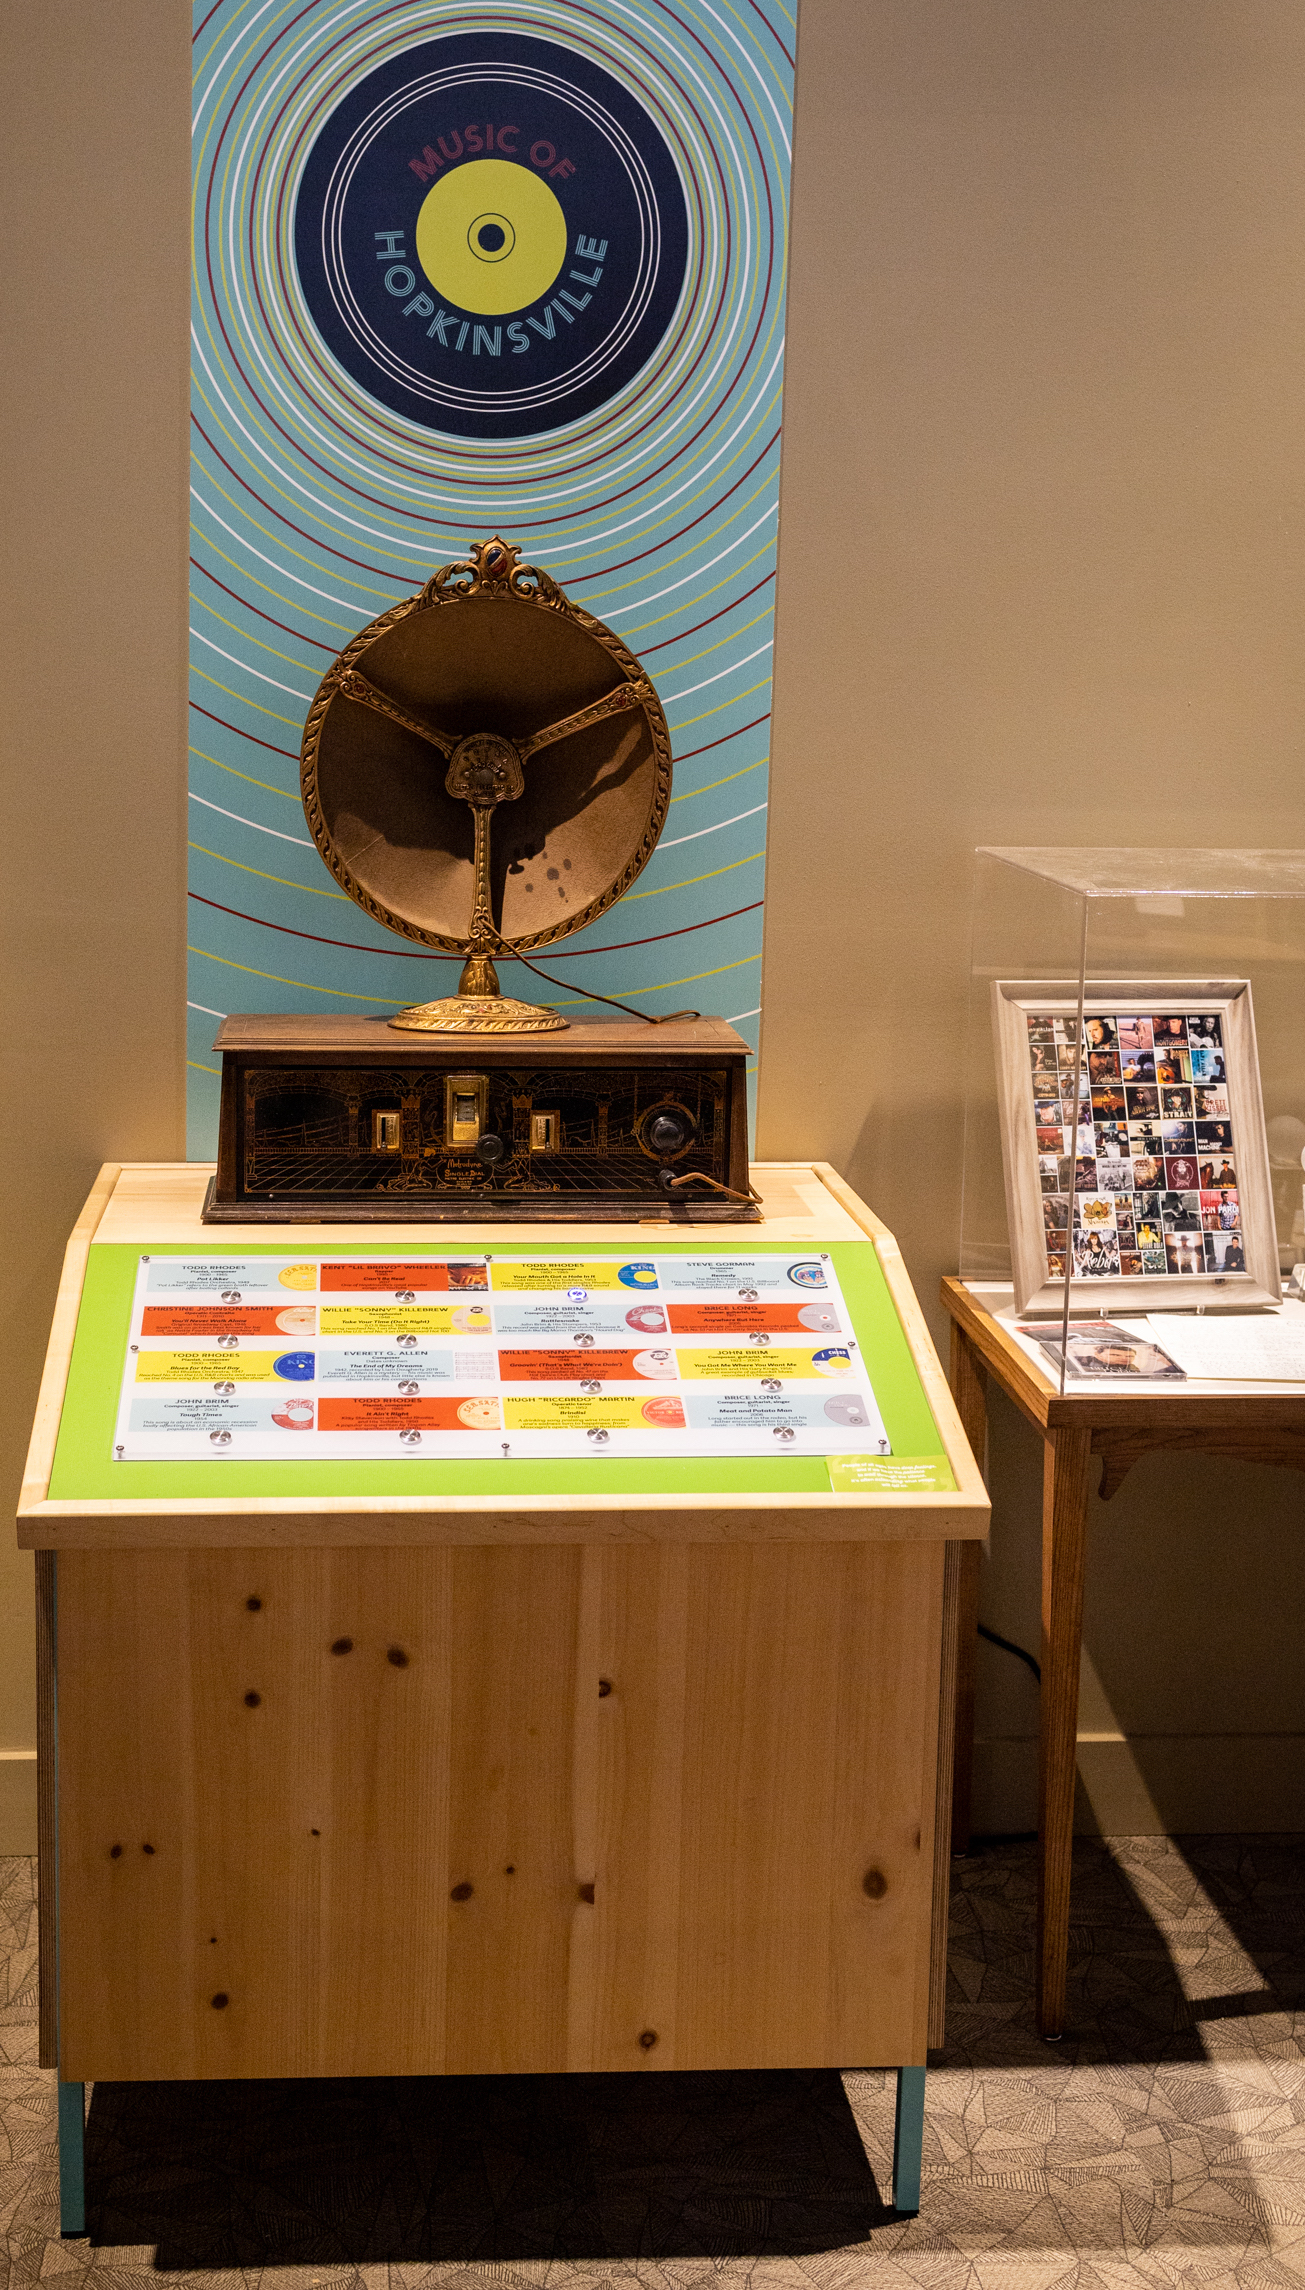 Sample the music of Hoptown through this interactive exhibit and antique speaker.